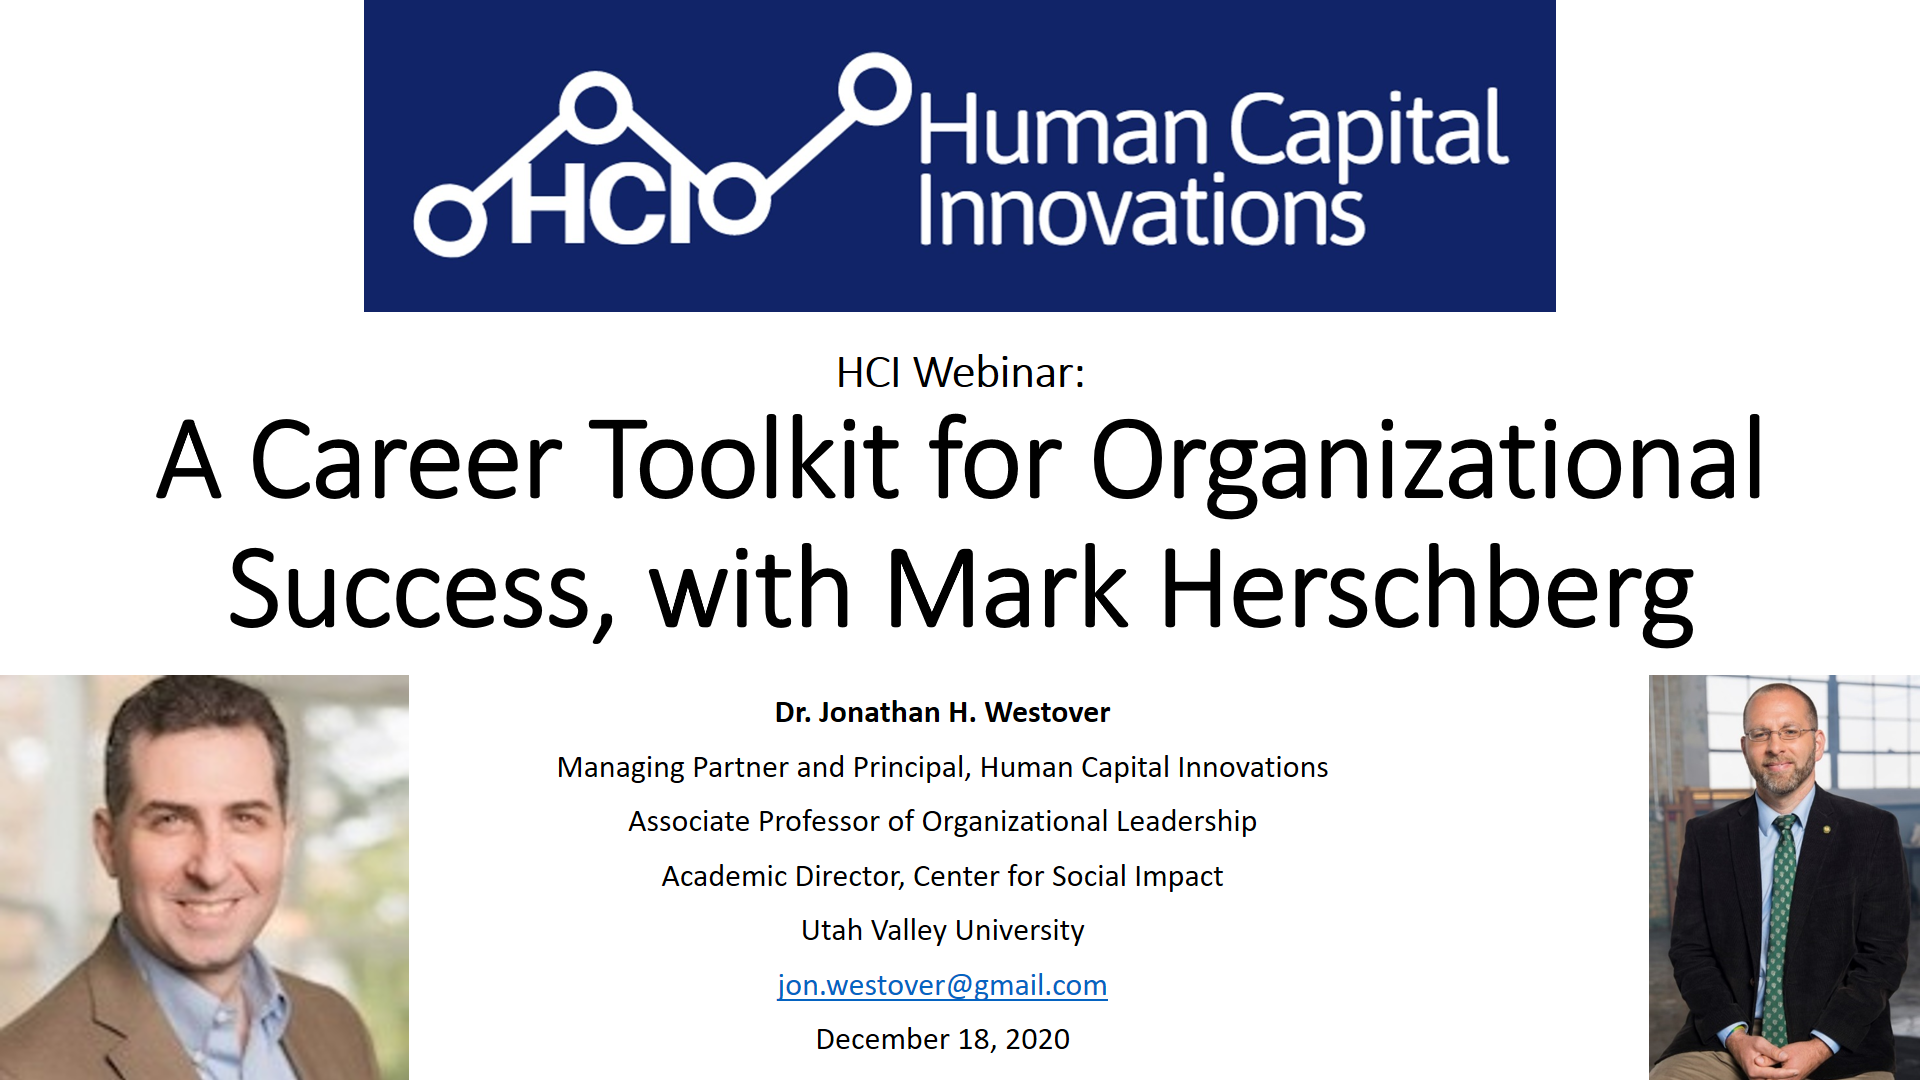 A Career Toolkit for Organizational Success